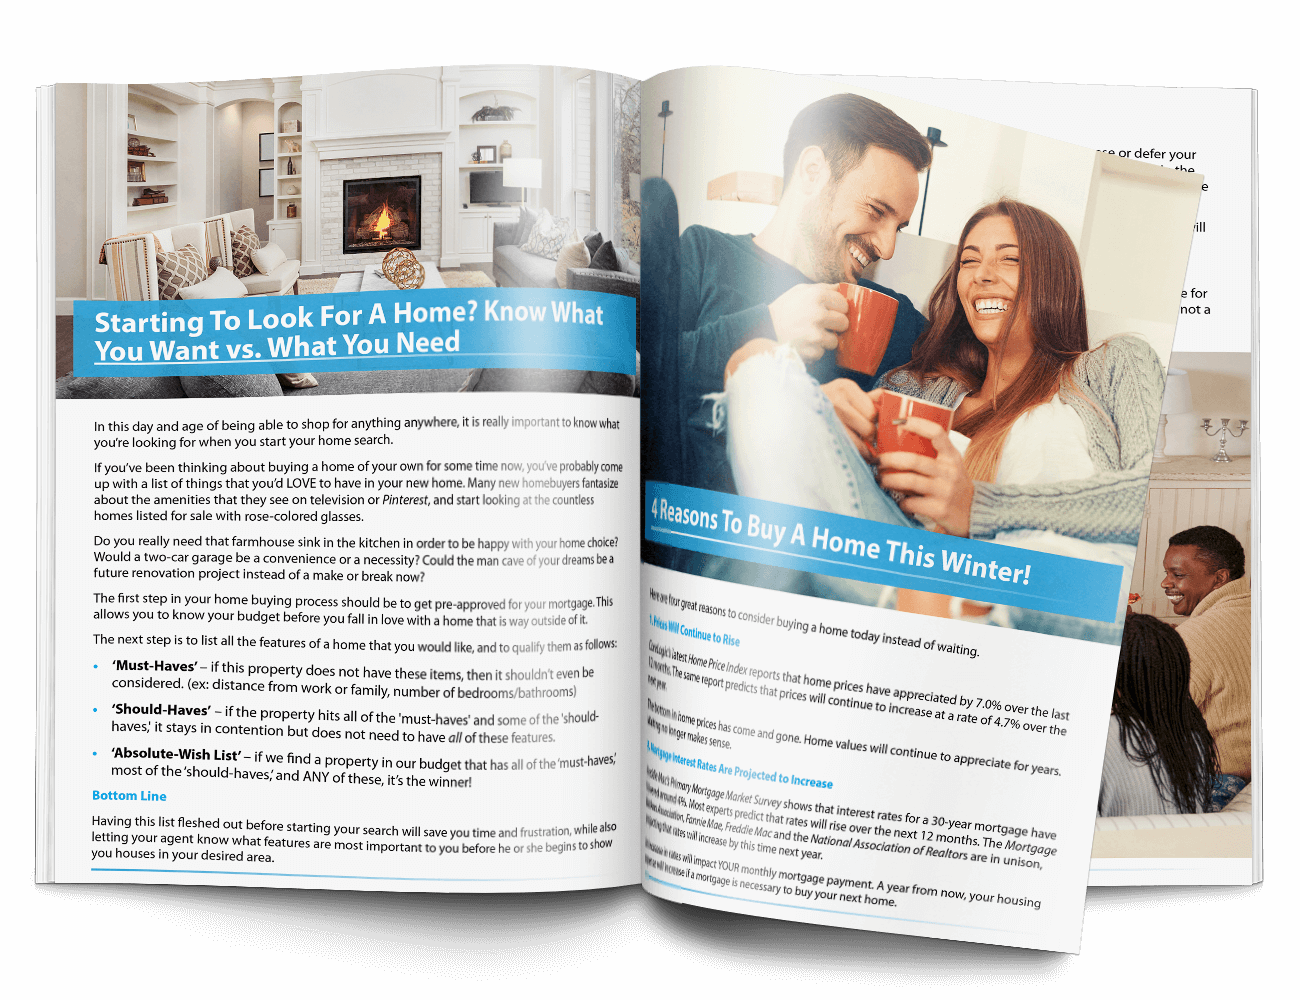 Home Buying: FREE HOME BUYERS GUIDE